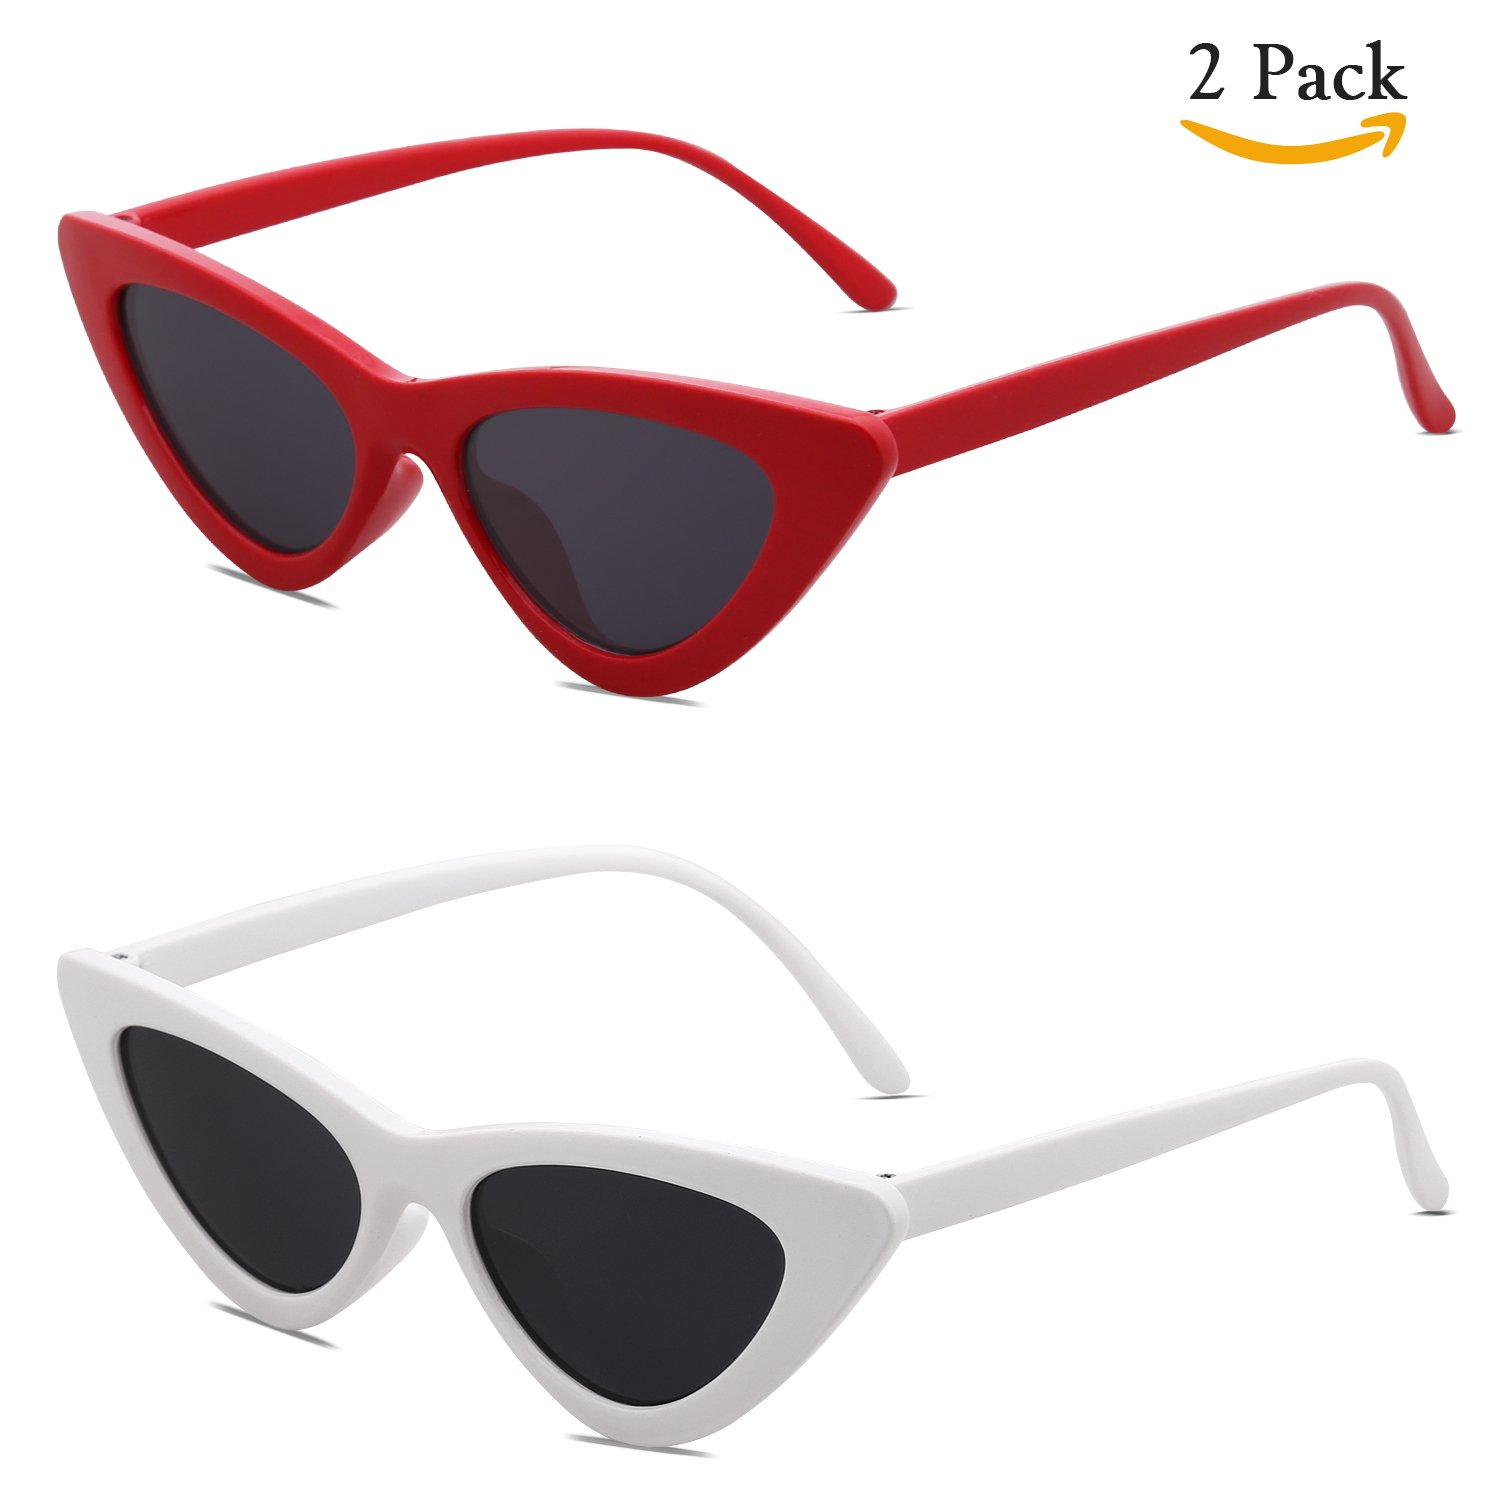 SOJOS Clout Goggles Cat Eye Sunglasses Vintage Mod Style Retro Kurt Cobain Sunglasses SJ2044 with Red Frame/Grey Lens + White Frame/Grey Lens 2 Pairs of Sunglasses